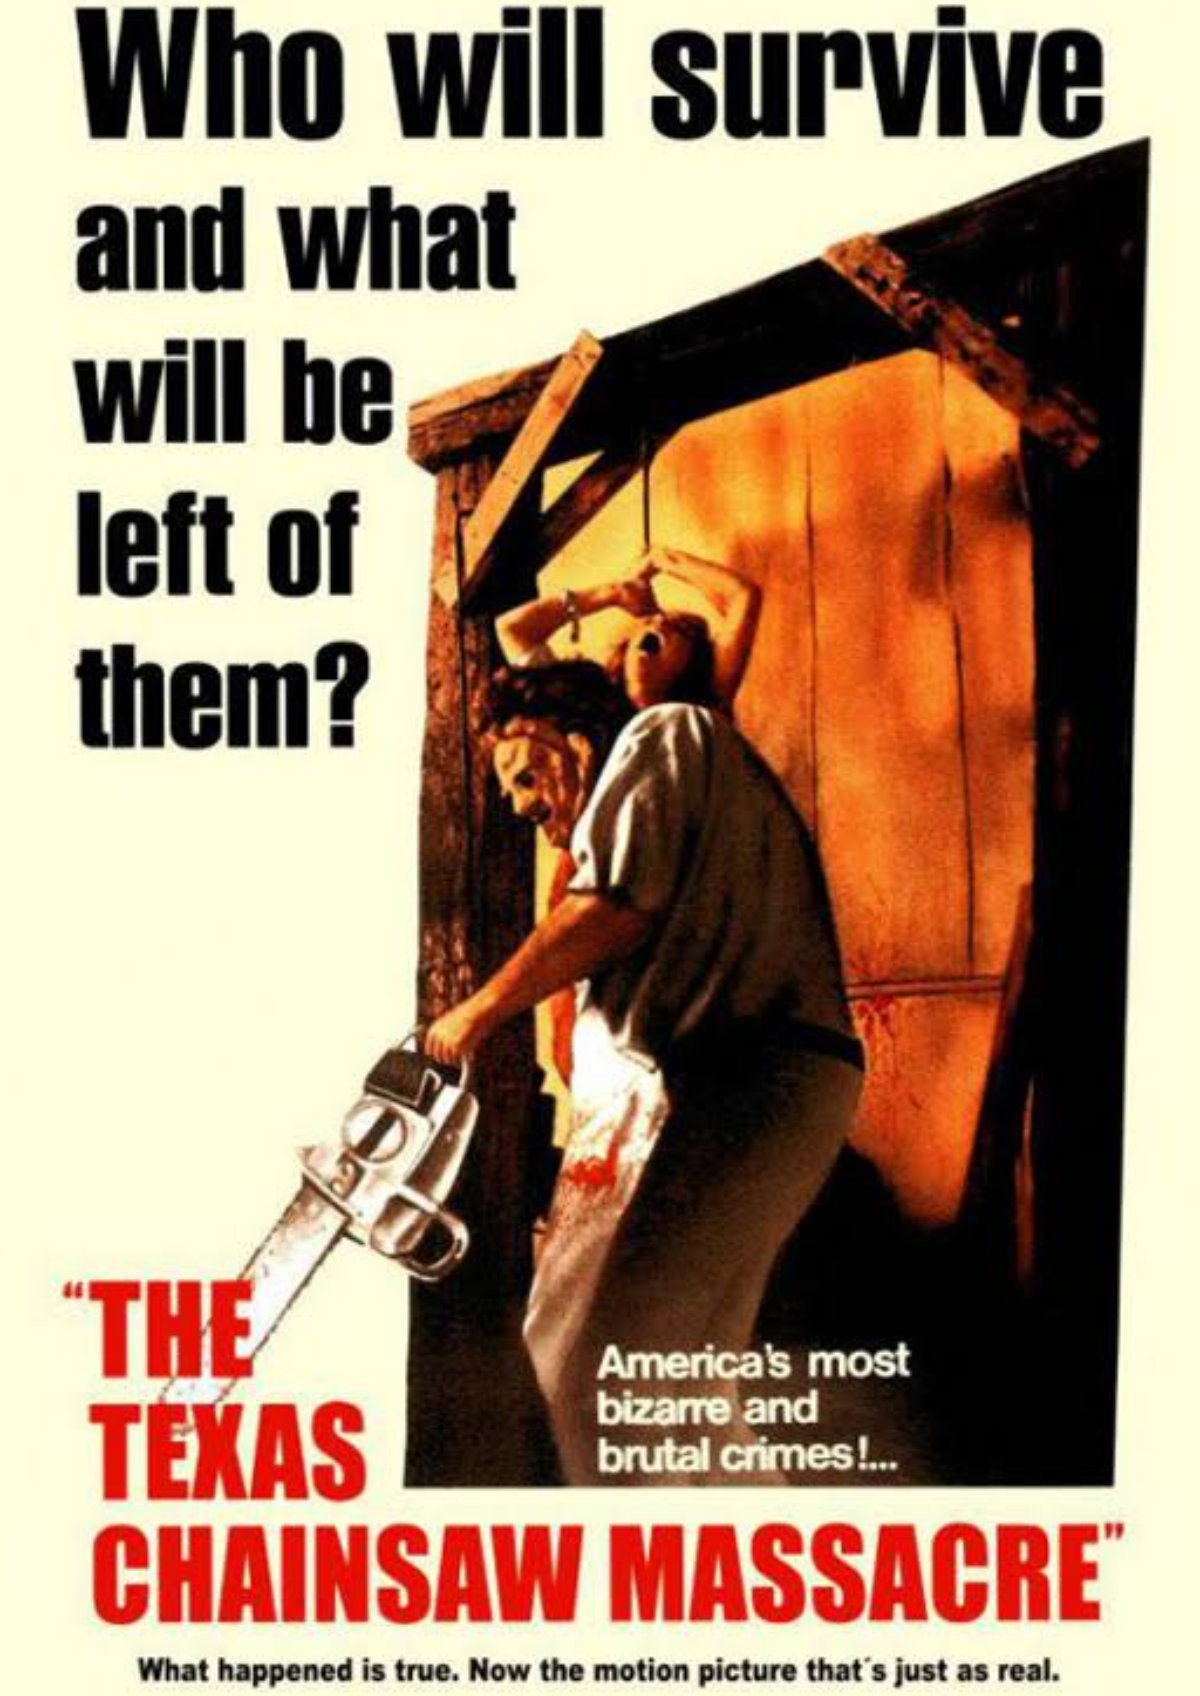 'The Texas Chainsaw Massacre (1974)' movie poster